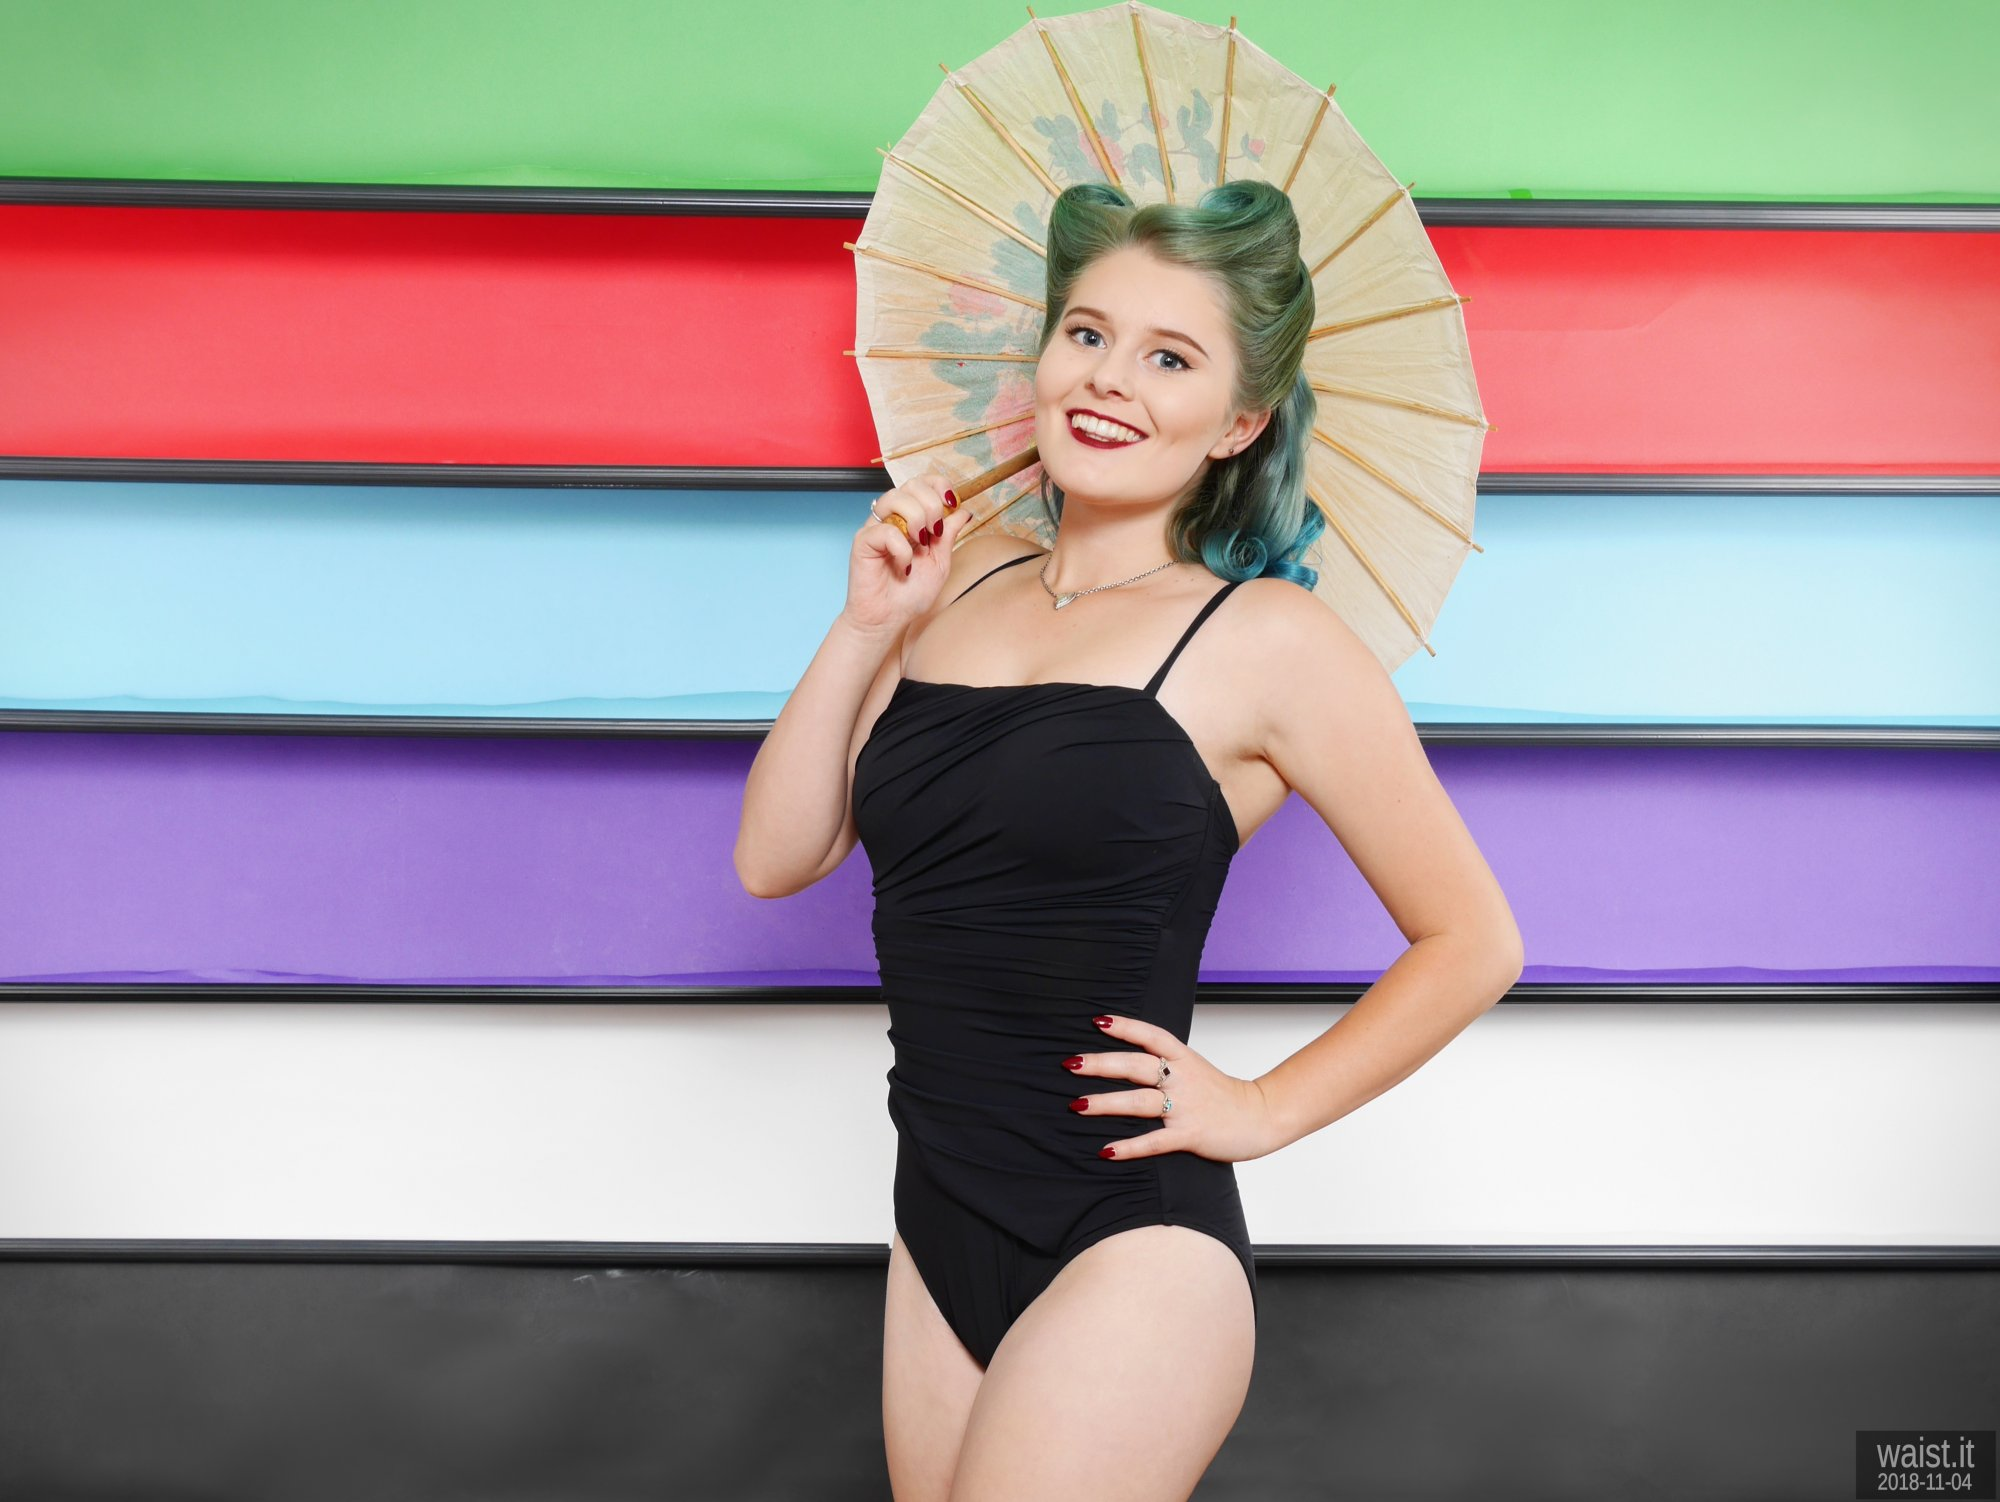 2018-11-04 Sophie Pixie in black vintage-style tummy-control swimsuit, demonstrating the studio